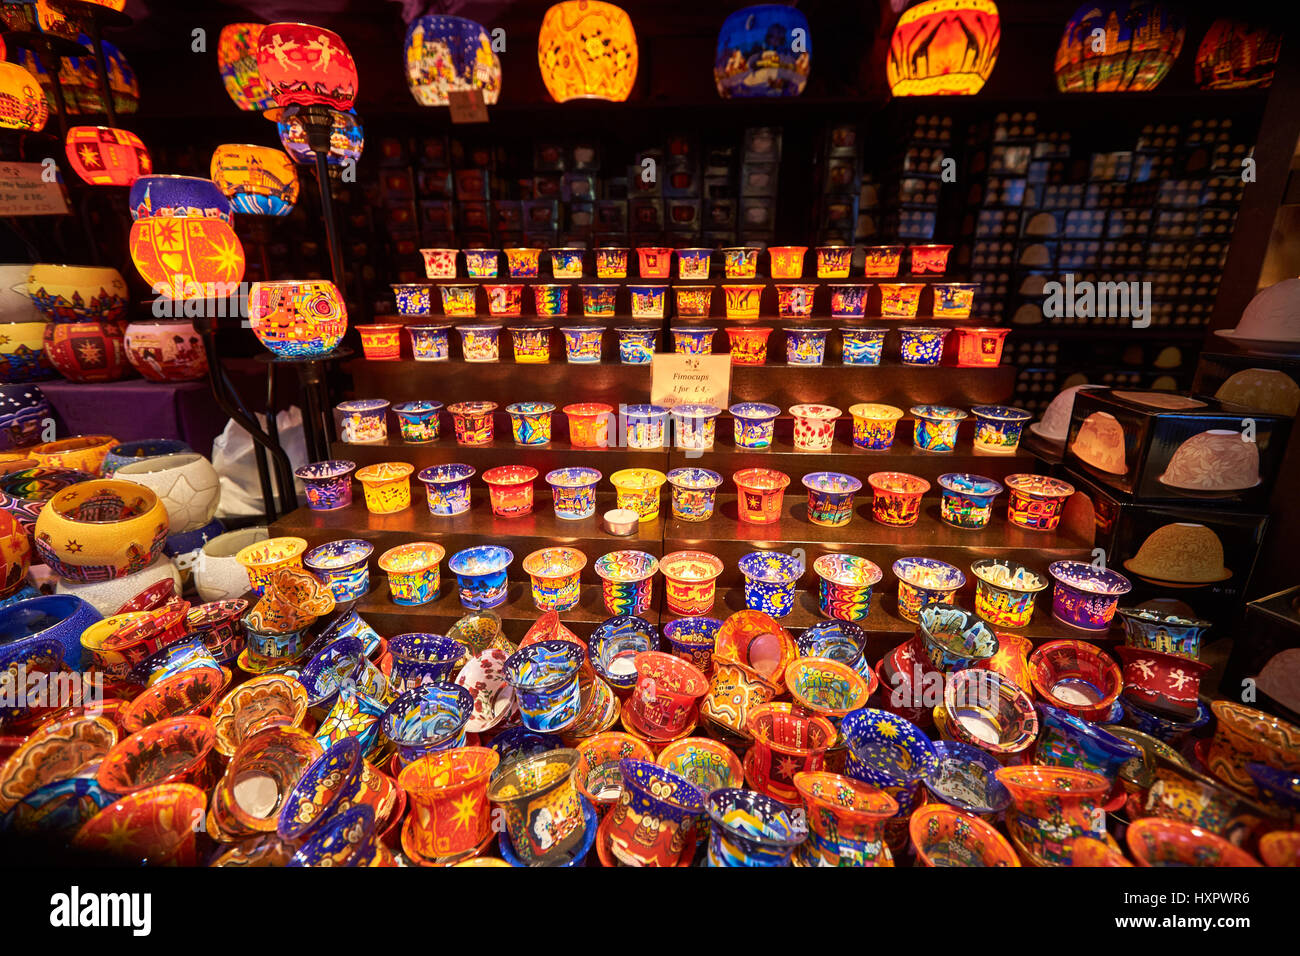 A stall selling candle holders and lanterns at a Christmas market in Leicester Square, London - Stock Image